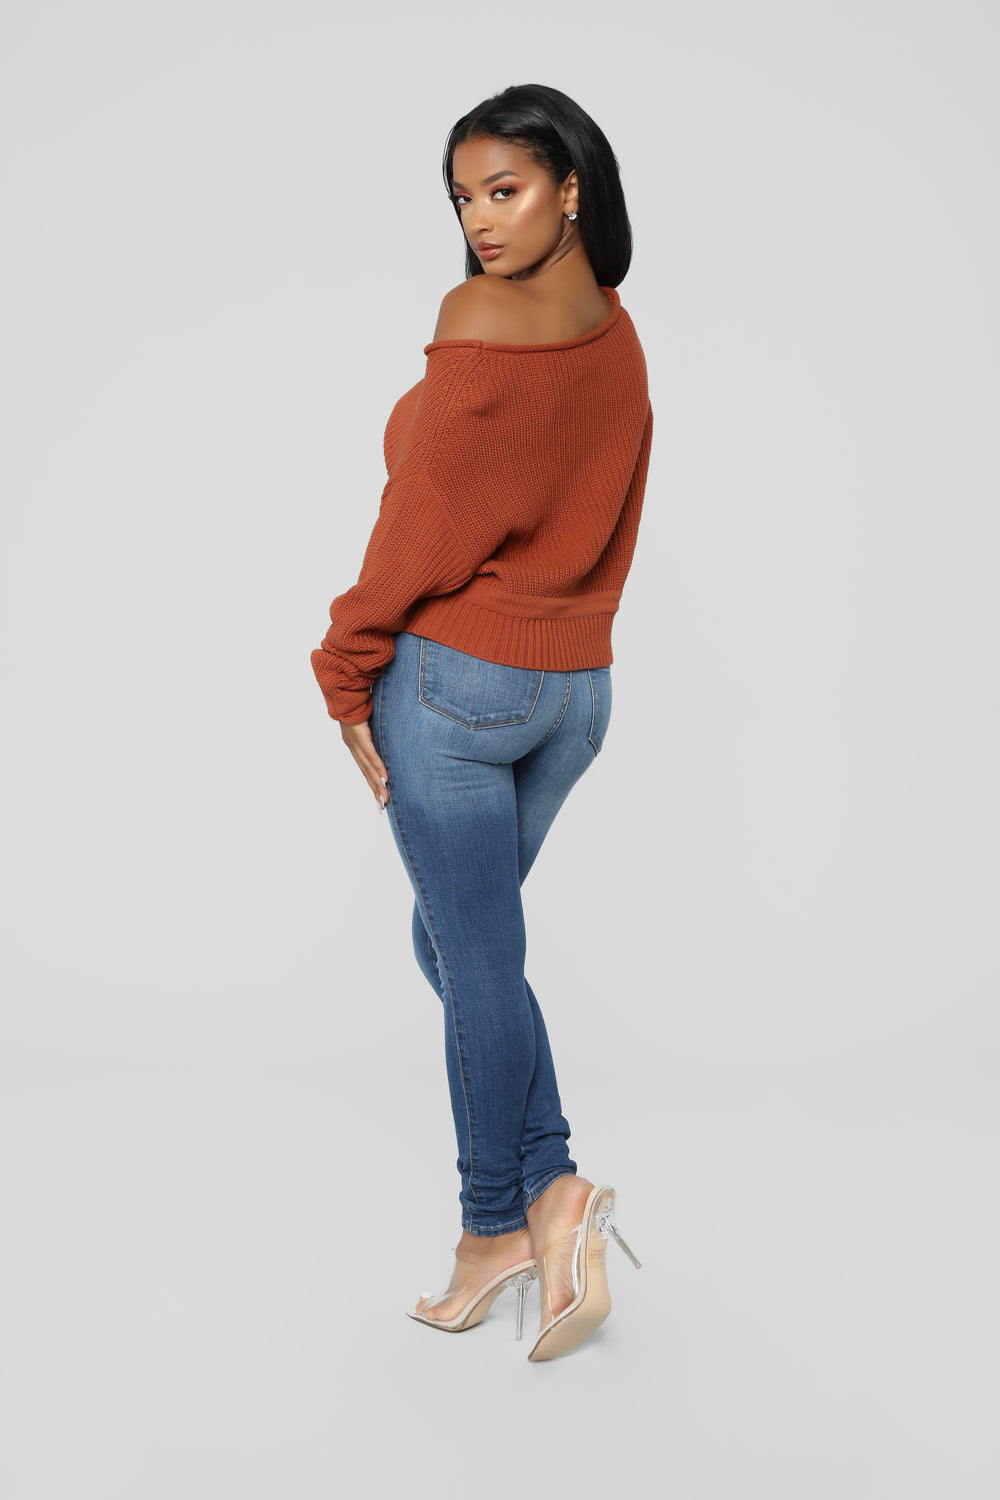 Eve Cropped Sweater - Brick